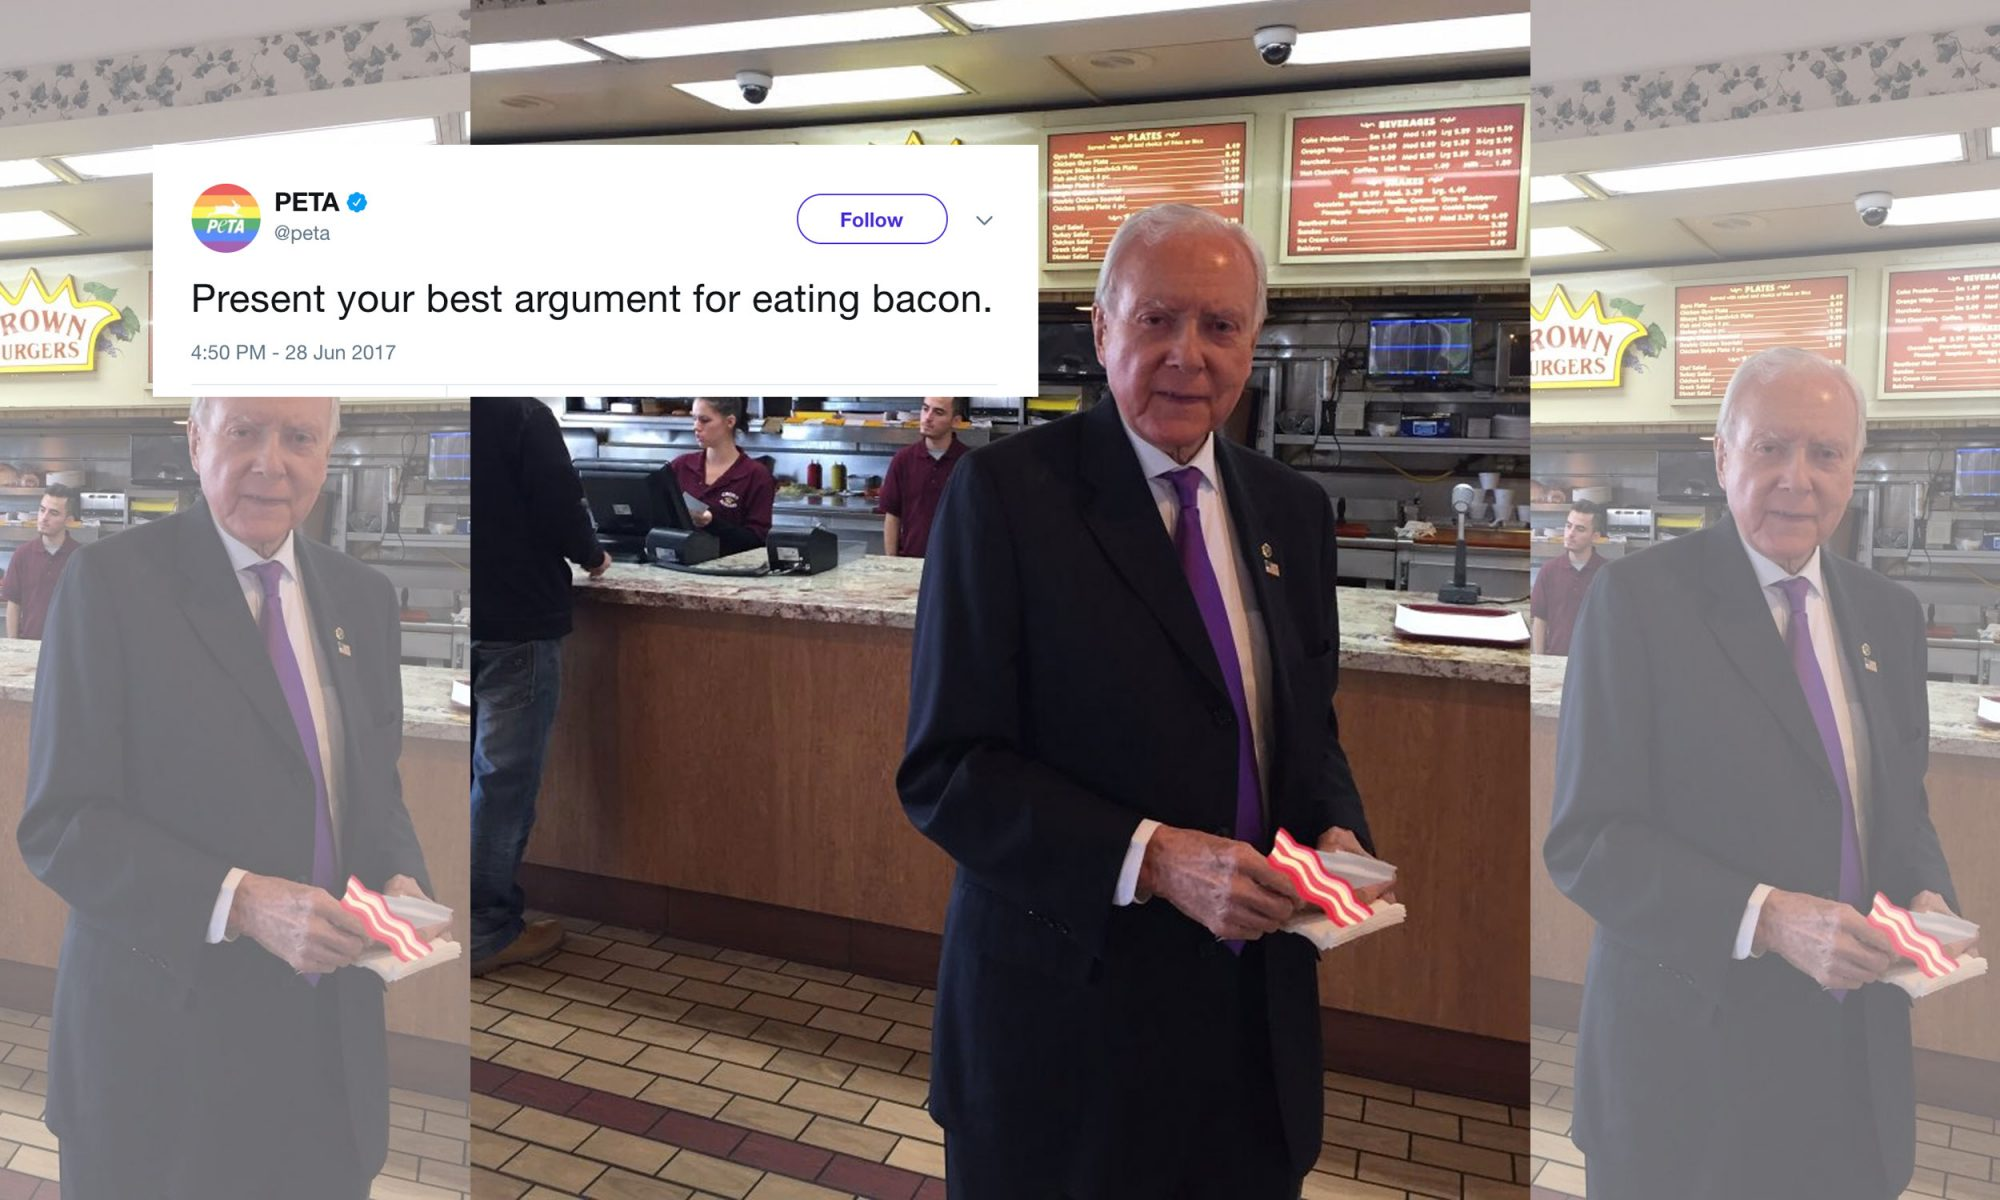 EC: PETA Asks People Why They Eat Bacon and Gets Trolled by US Senator